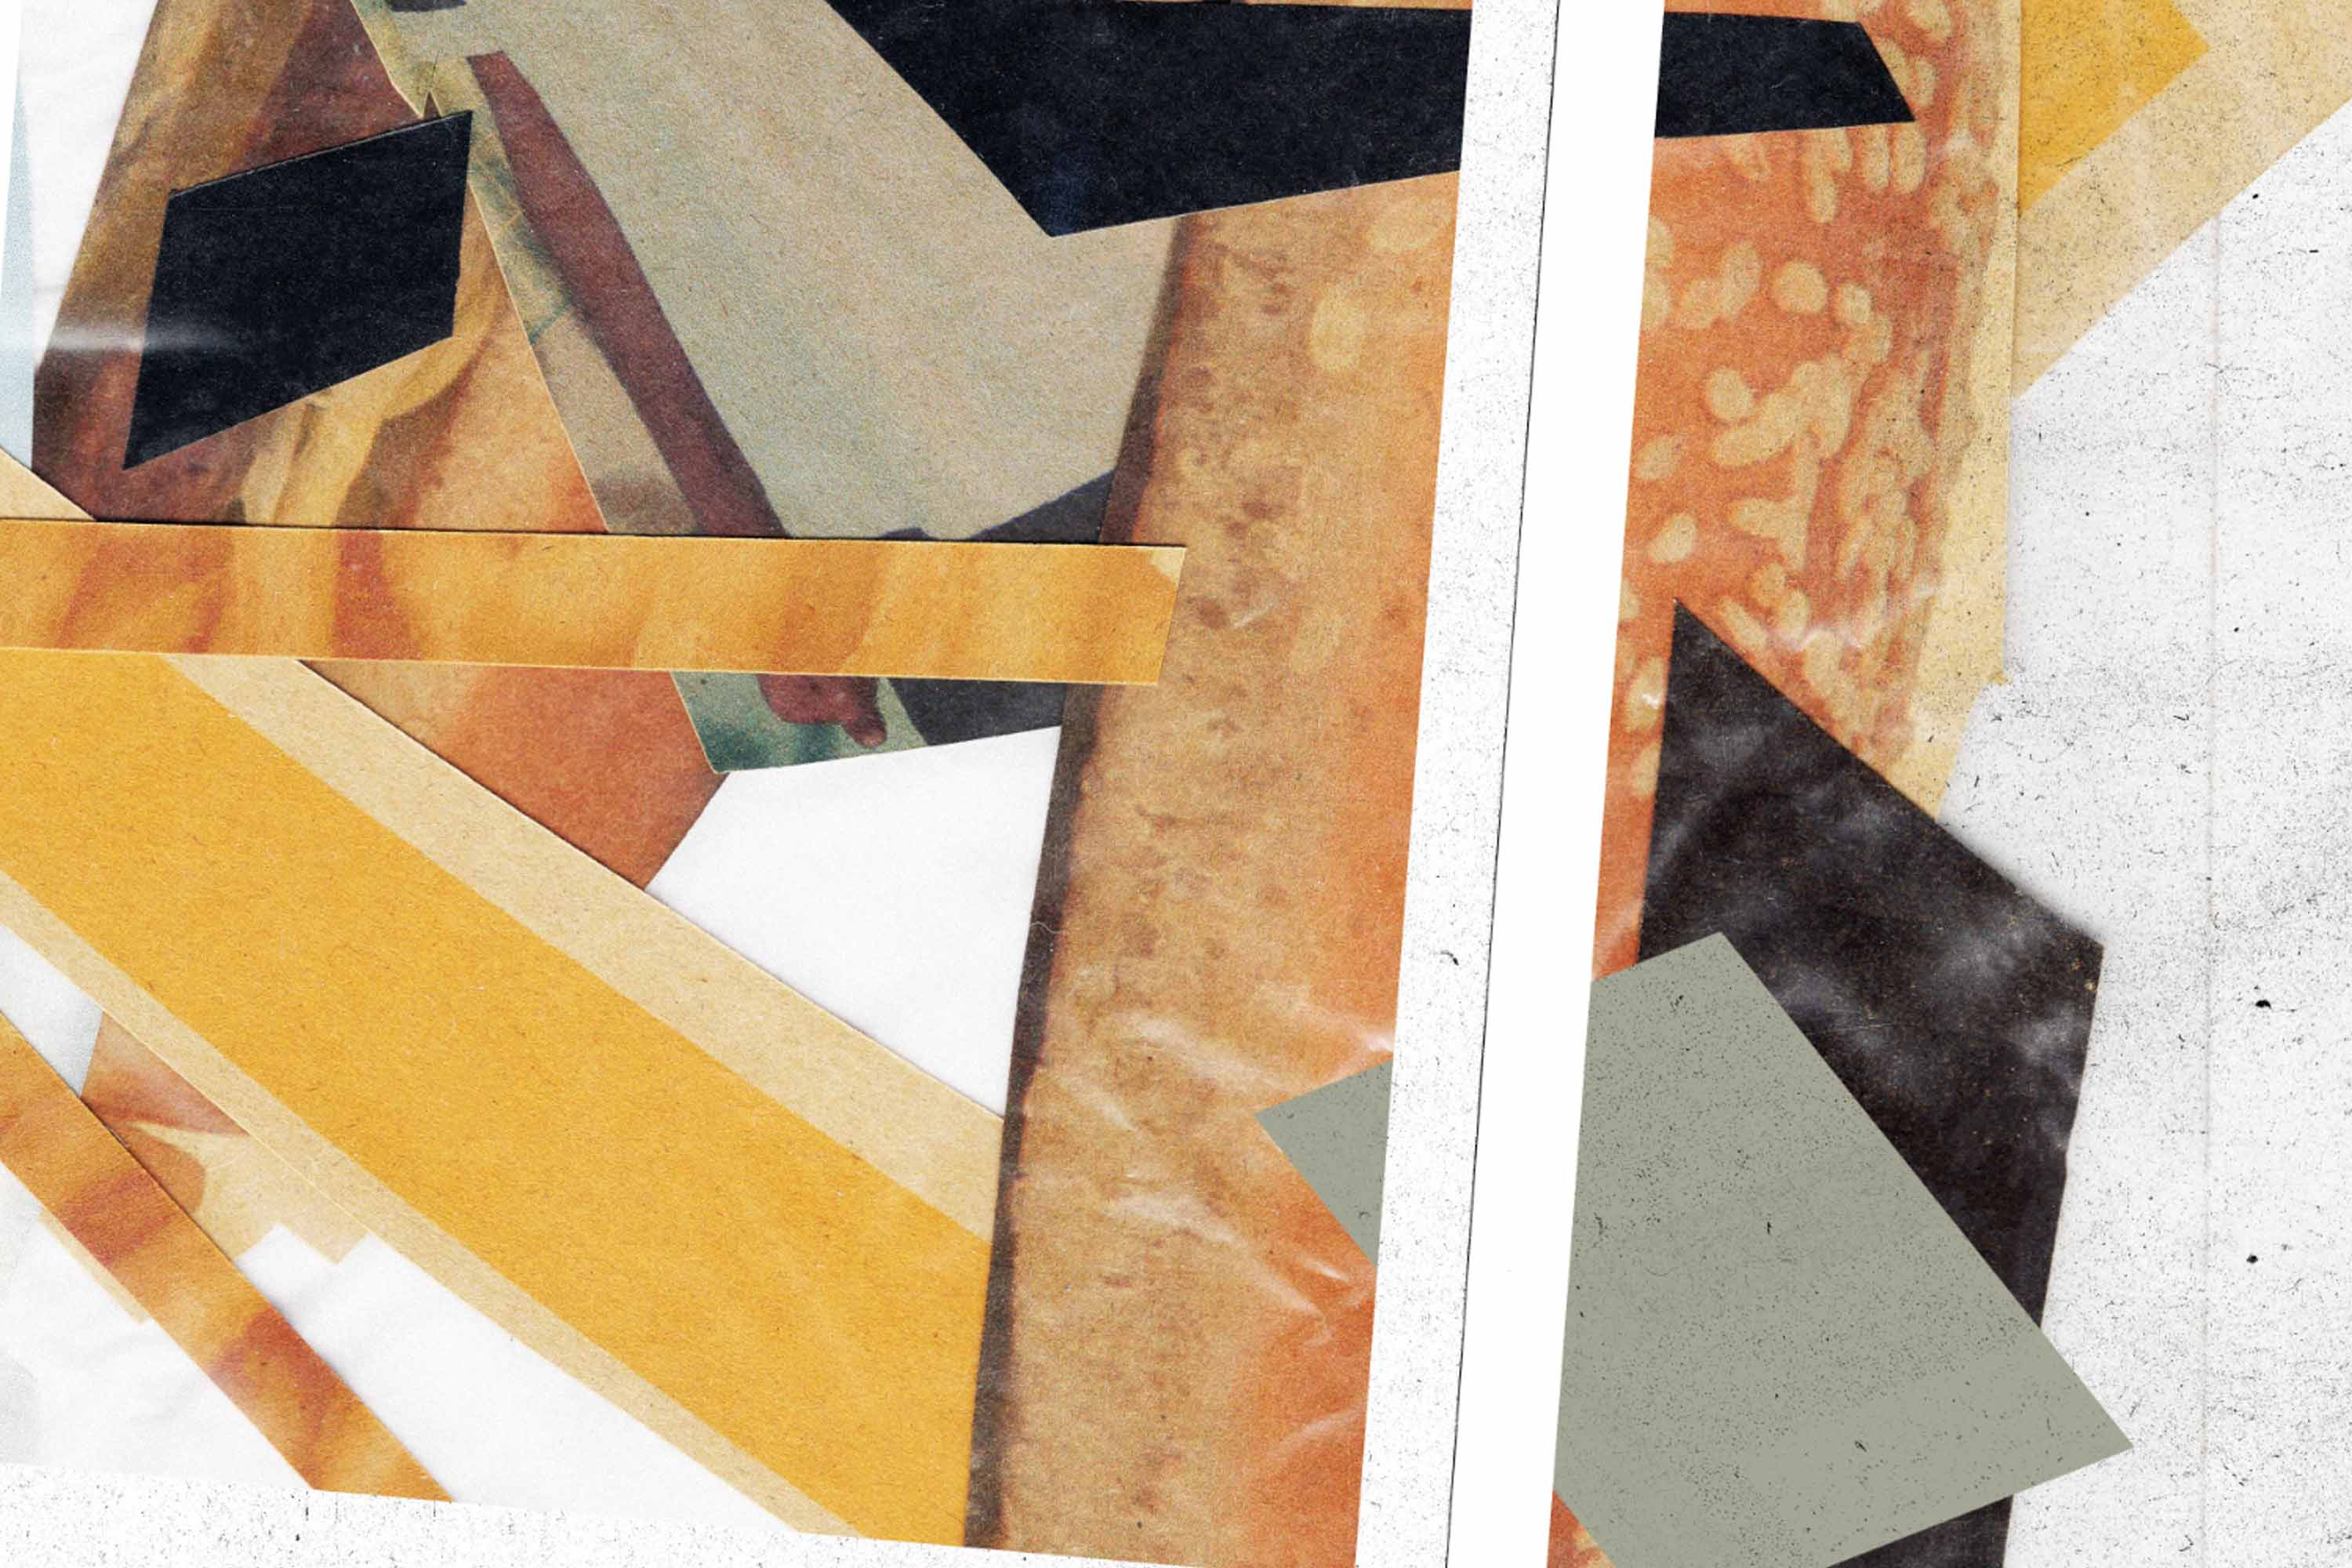 Collage detail.